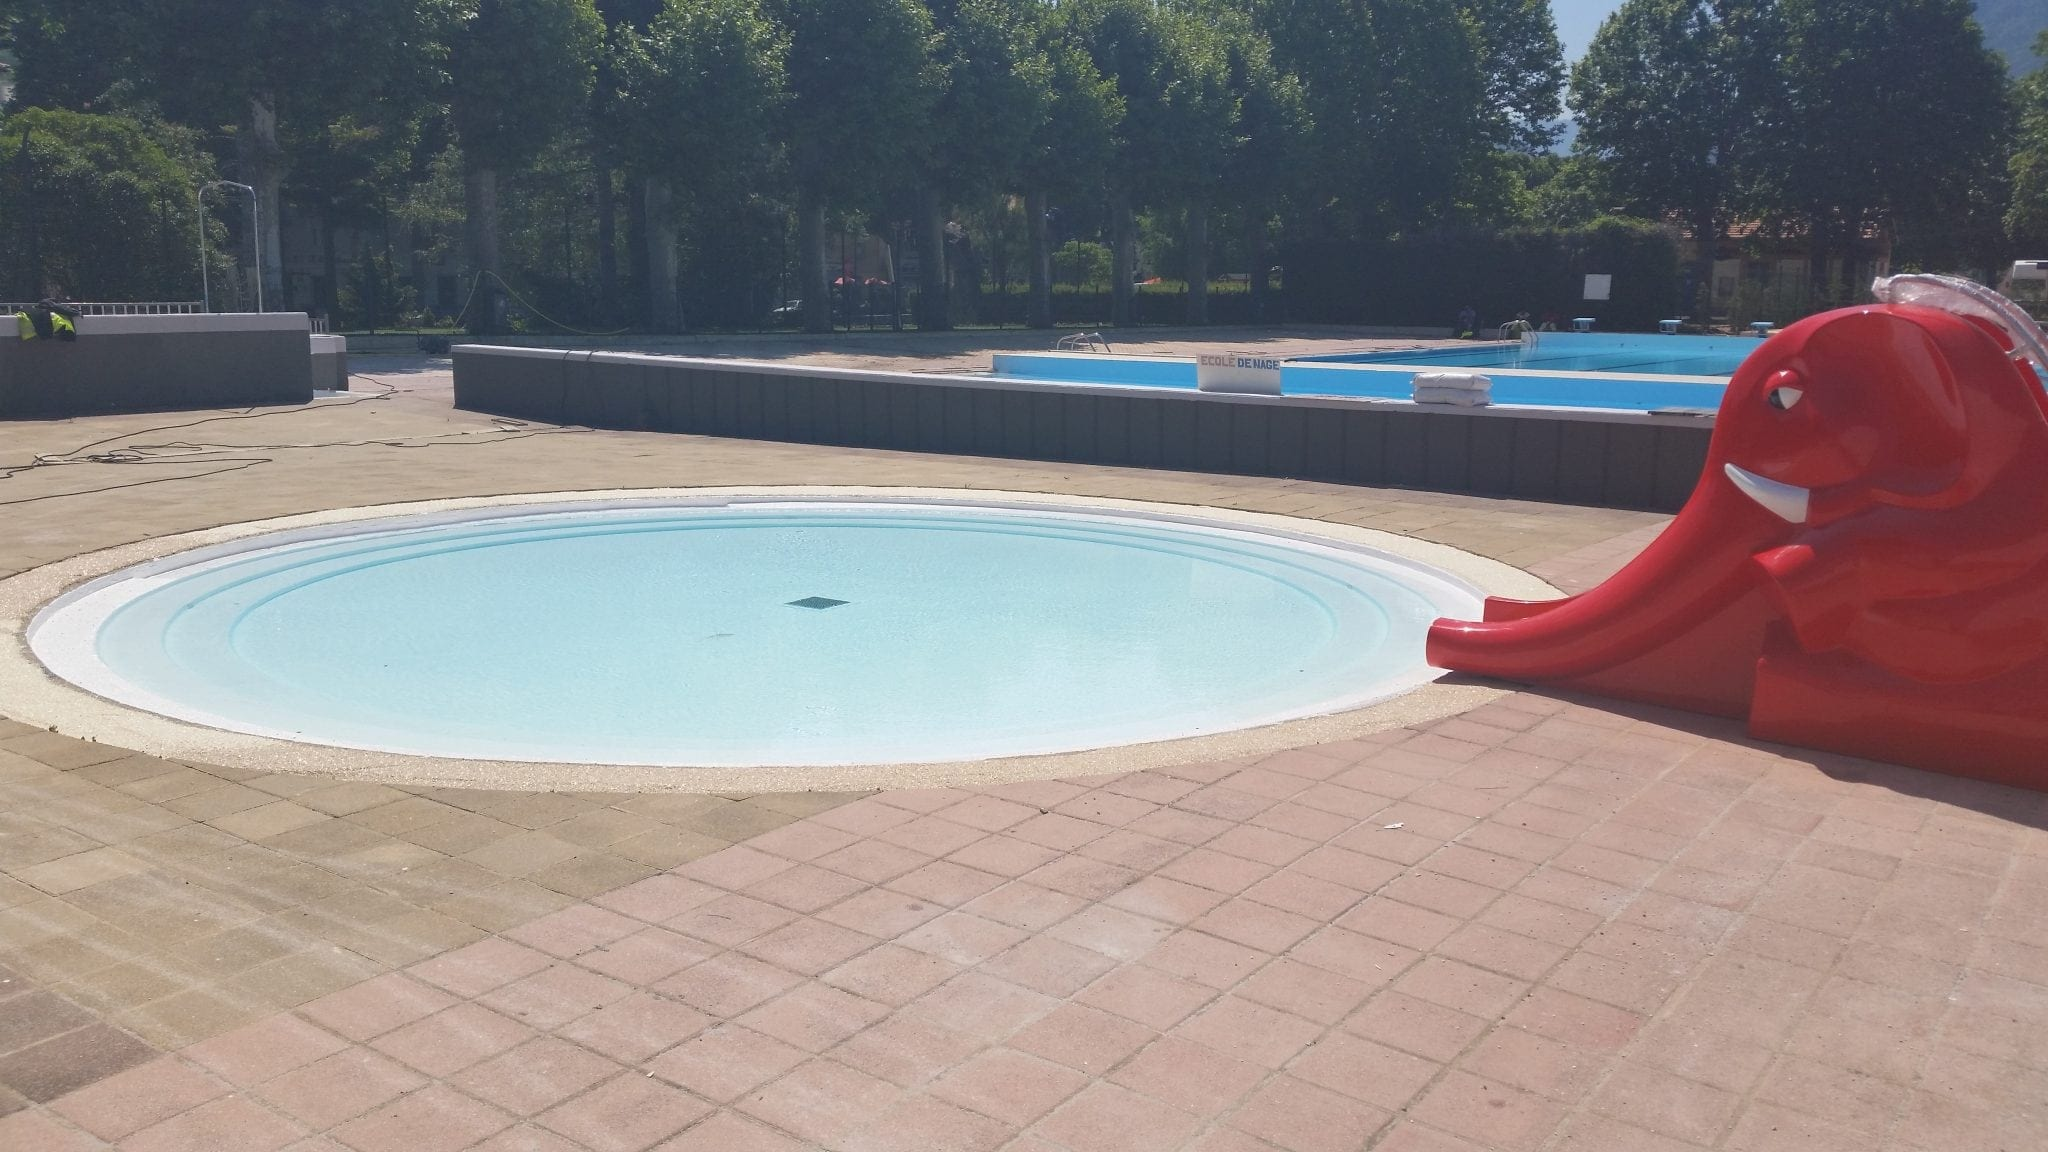 Renovation piscine public narbonne 8 btv piscine for Piscine narbonne